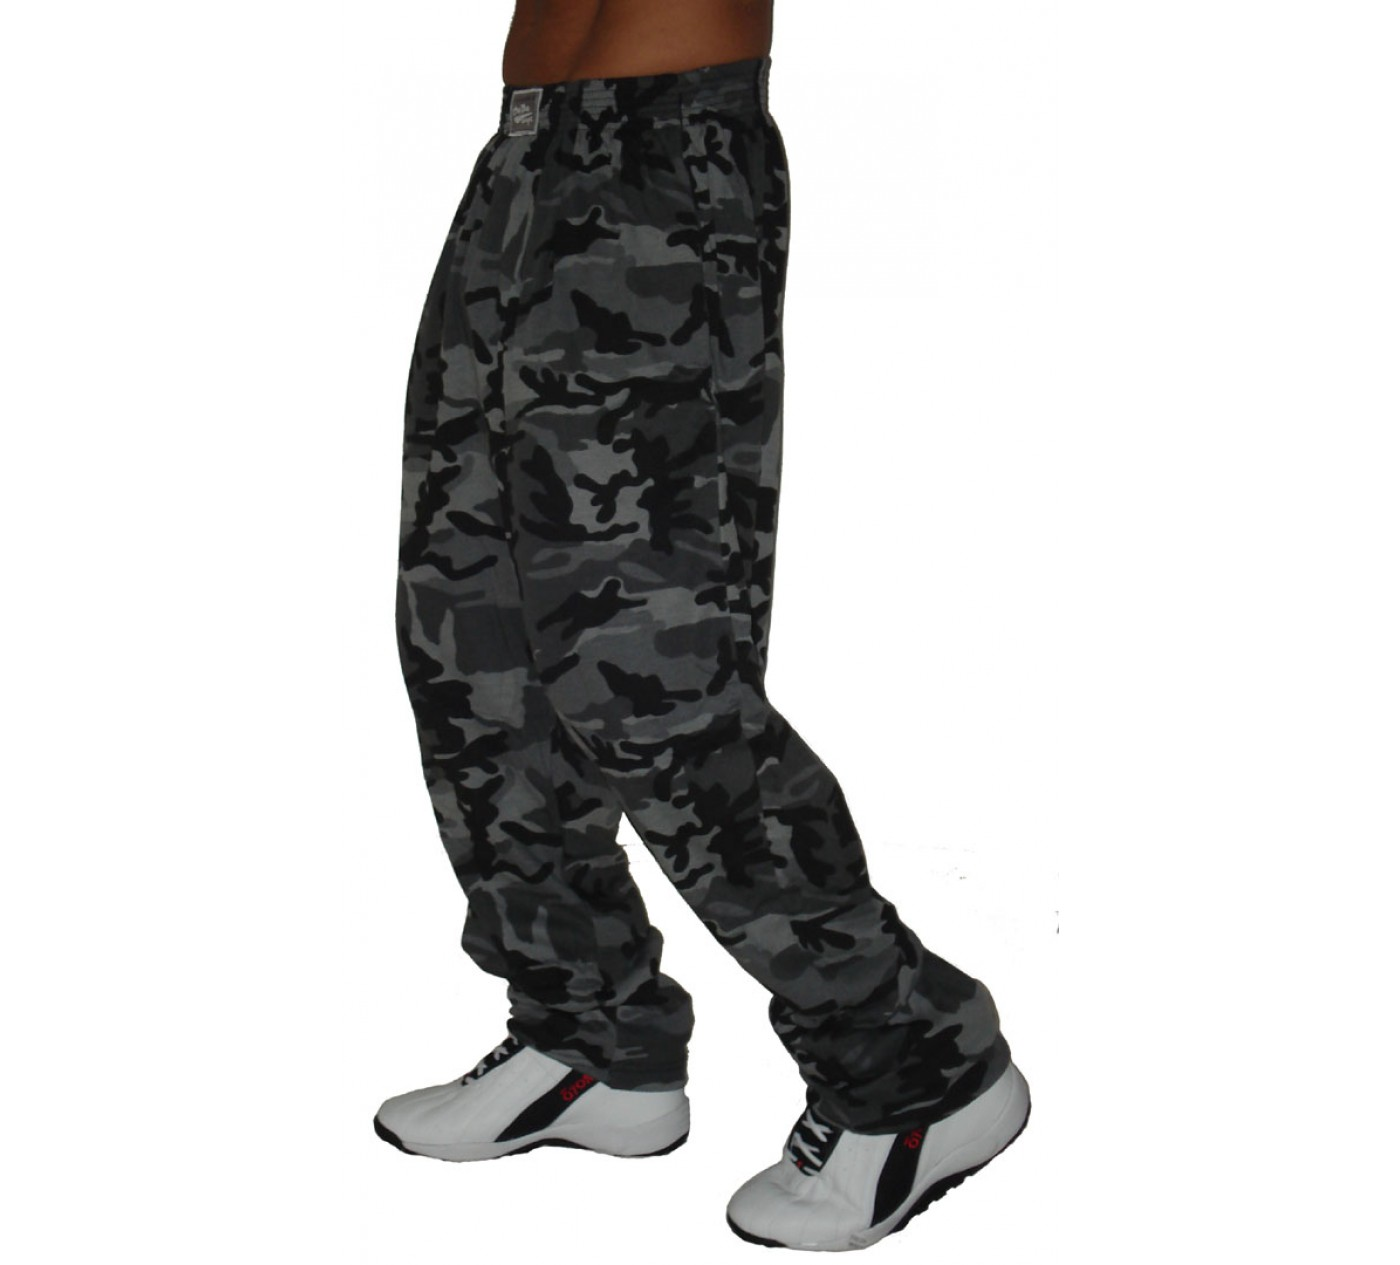 C500 Kalifornien Verrückte Wear Workout Pants - Patterns